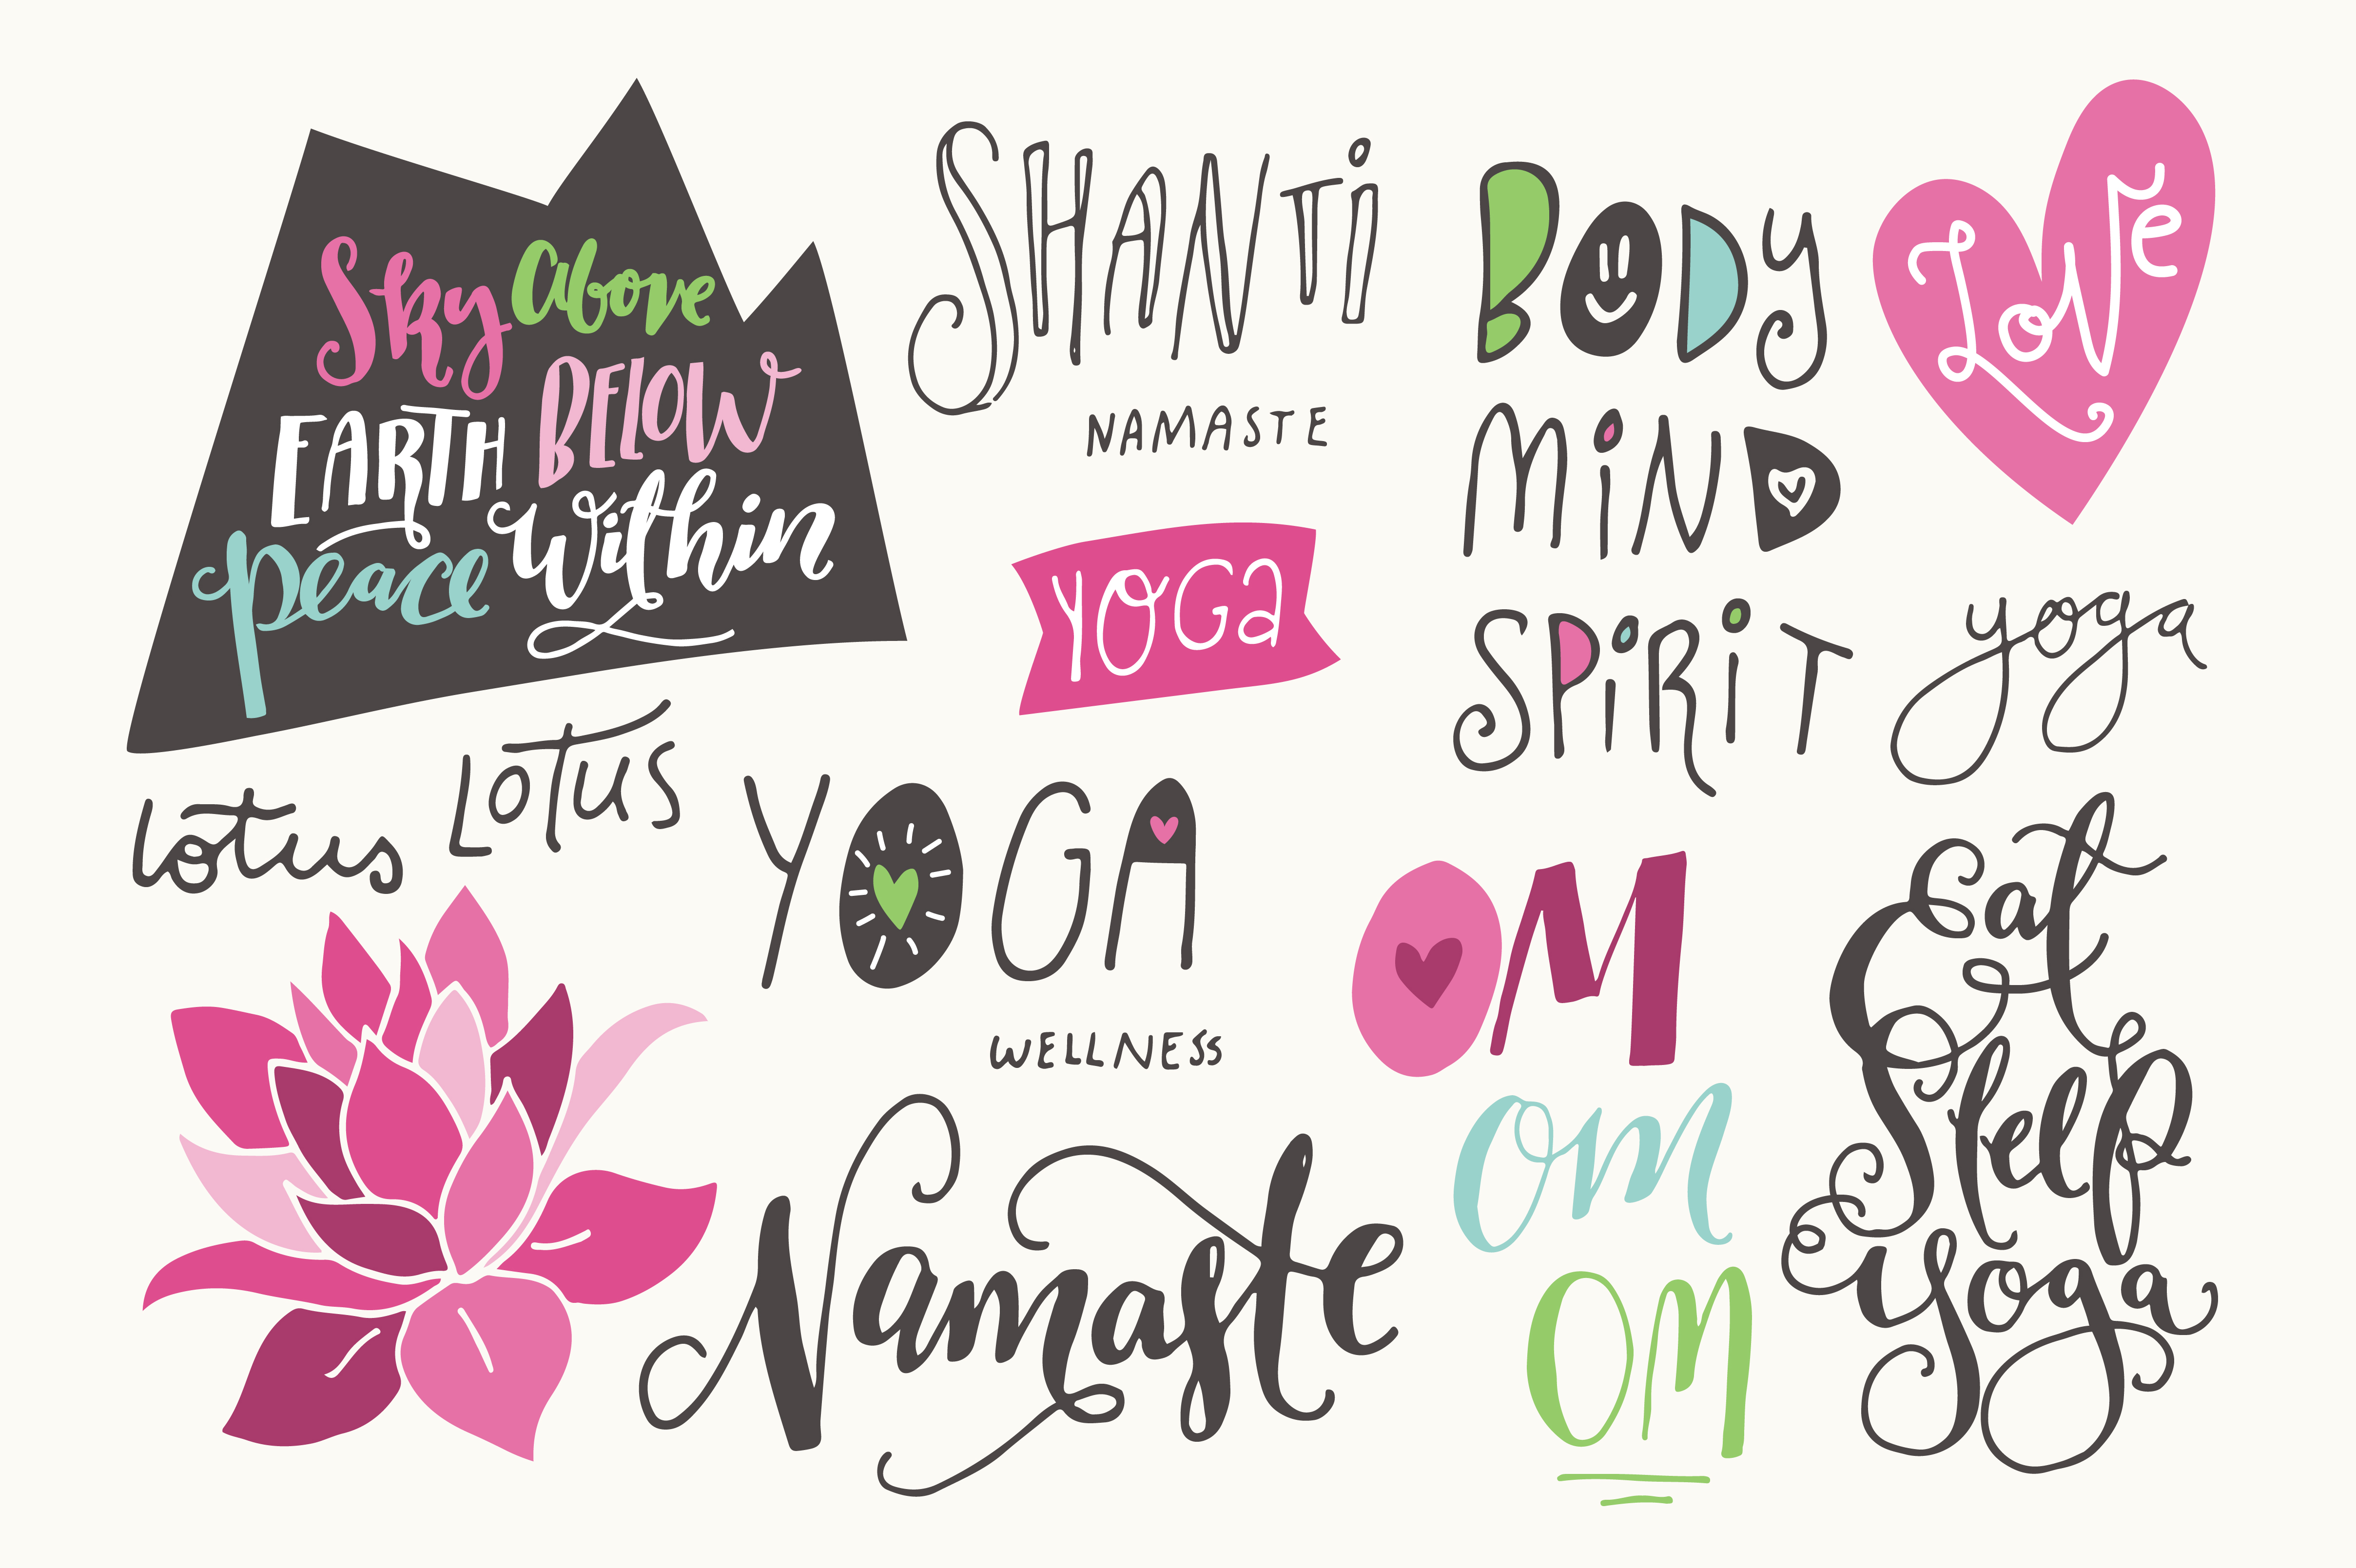 Yoga Phrases & Lotus Flowers Graphic Illustrations By The Pen and Brush